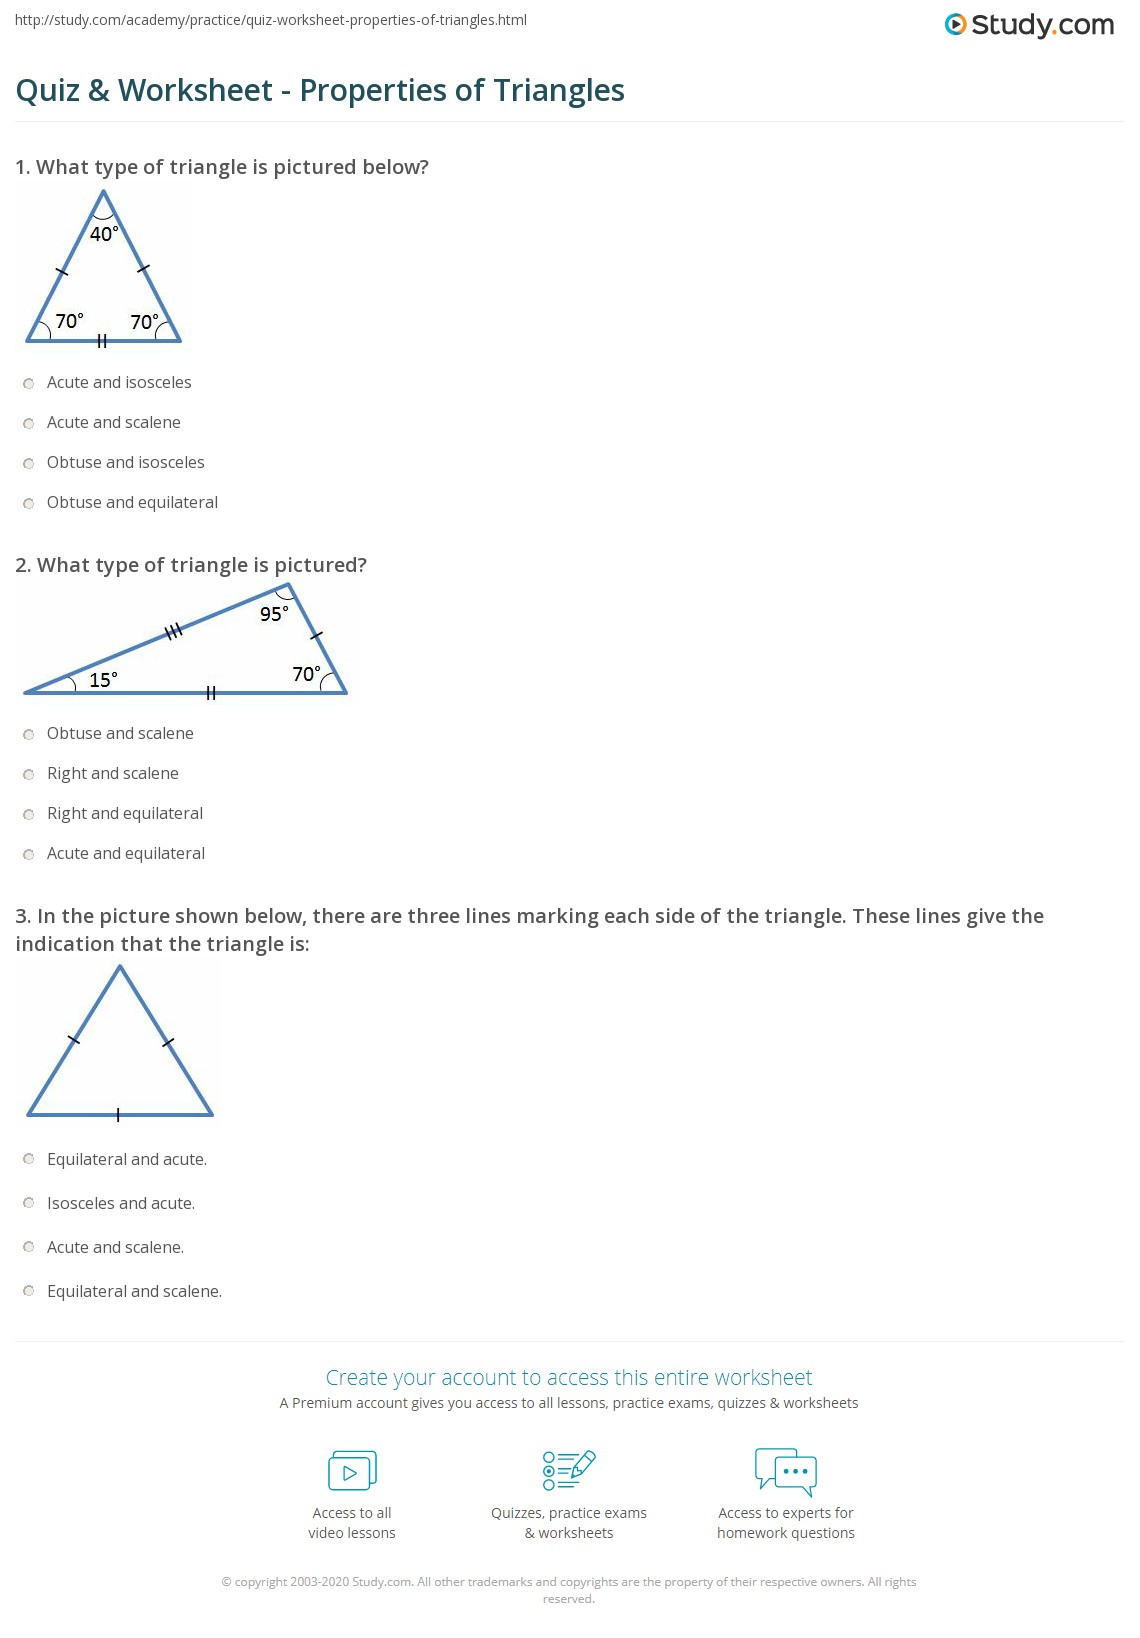 Properties Of Triangles Review Answers